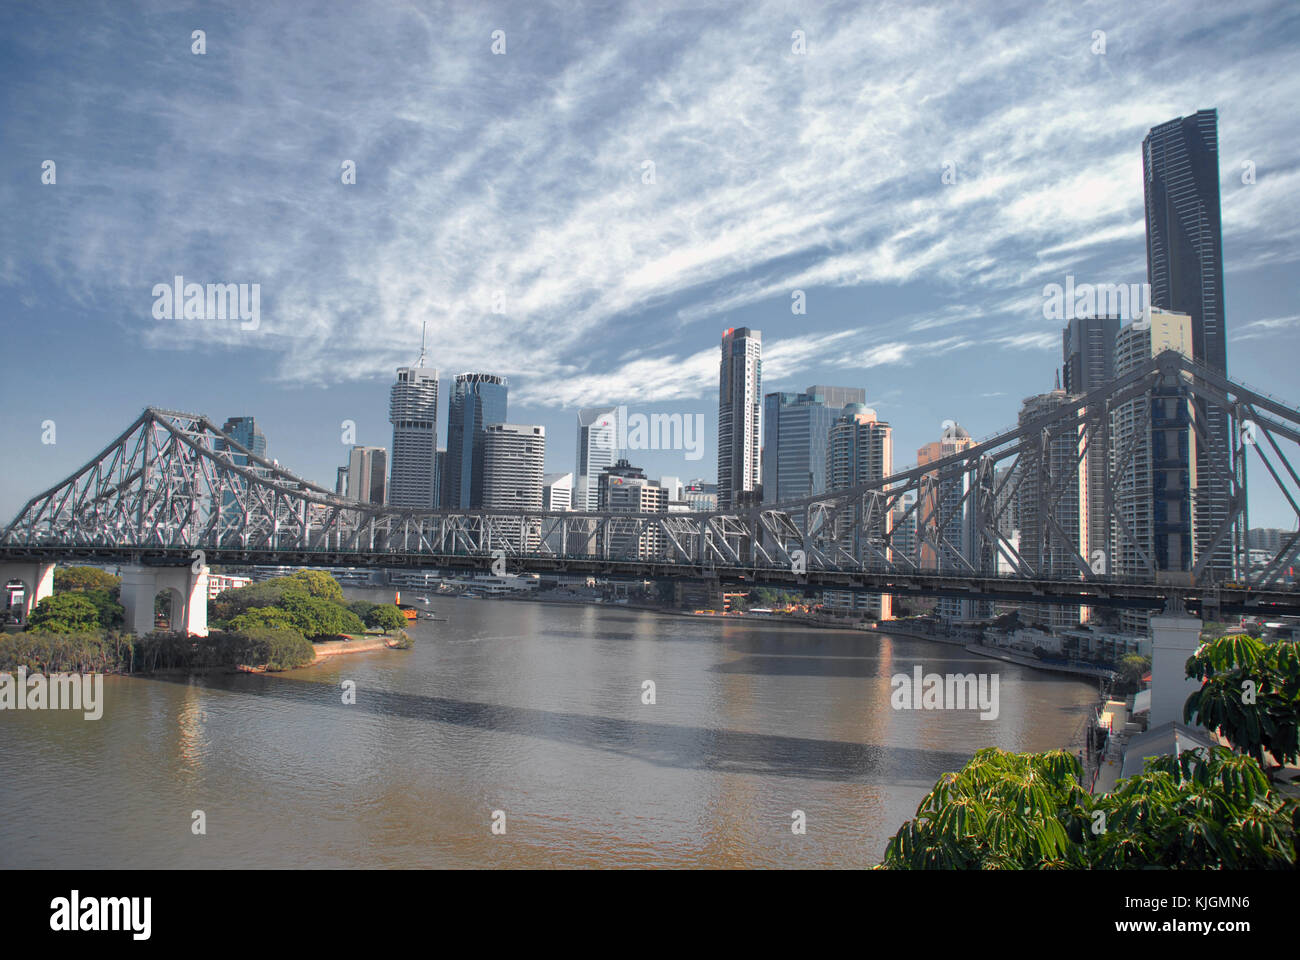 Story Bridge and skyscraper of Brisbane under blue skys with clouds - Stock Image